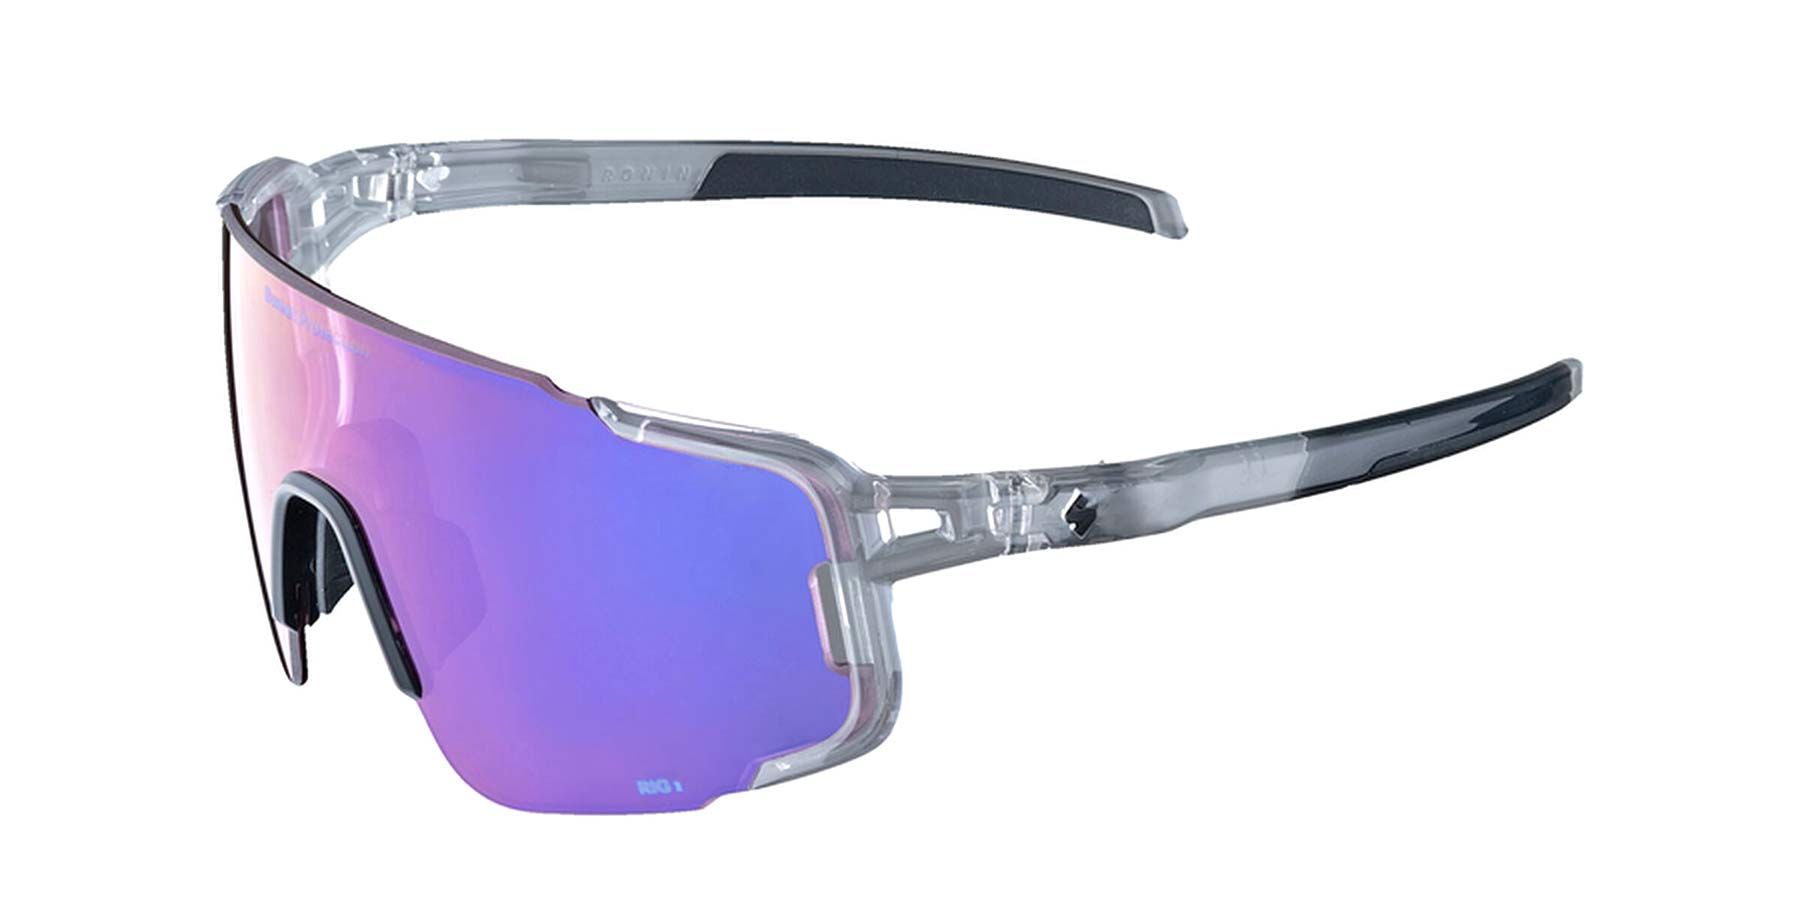 Sweet Protection Ronin (Max) Rig sunglasses